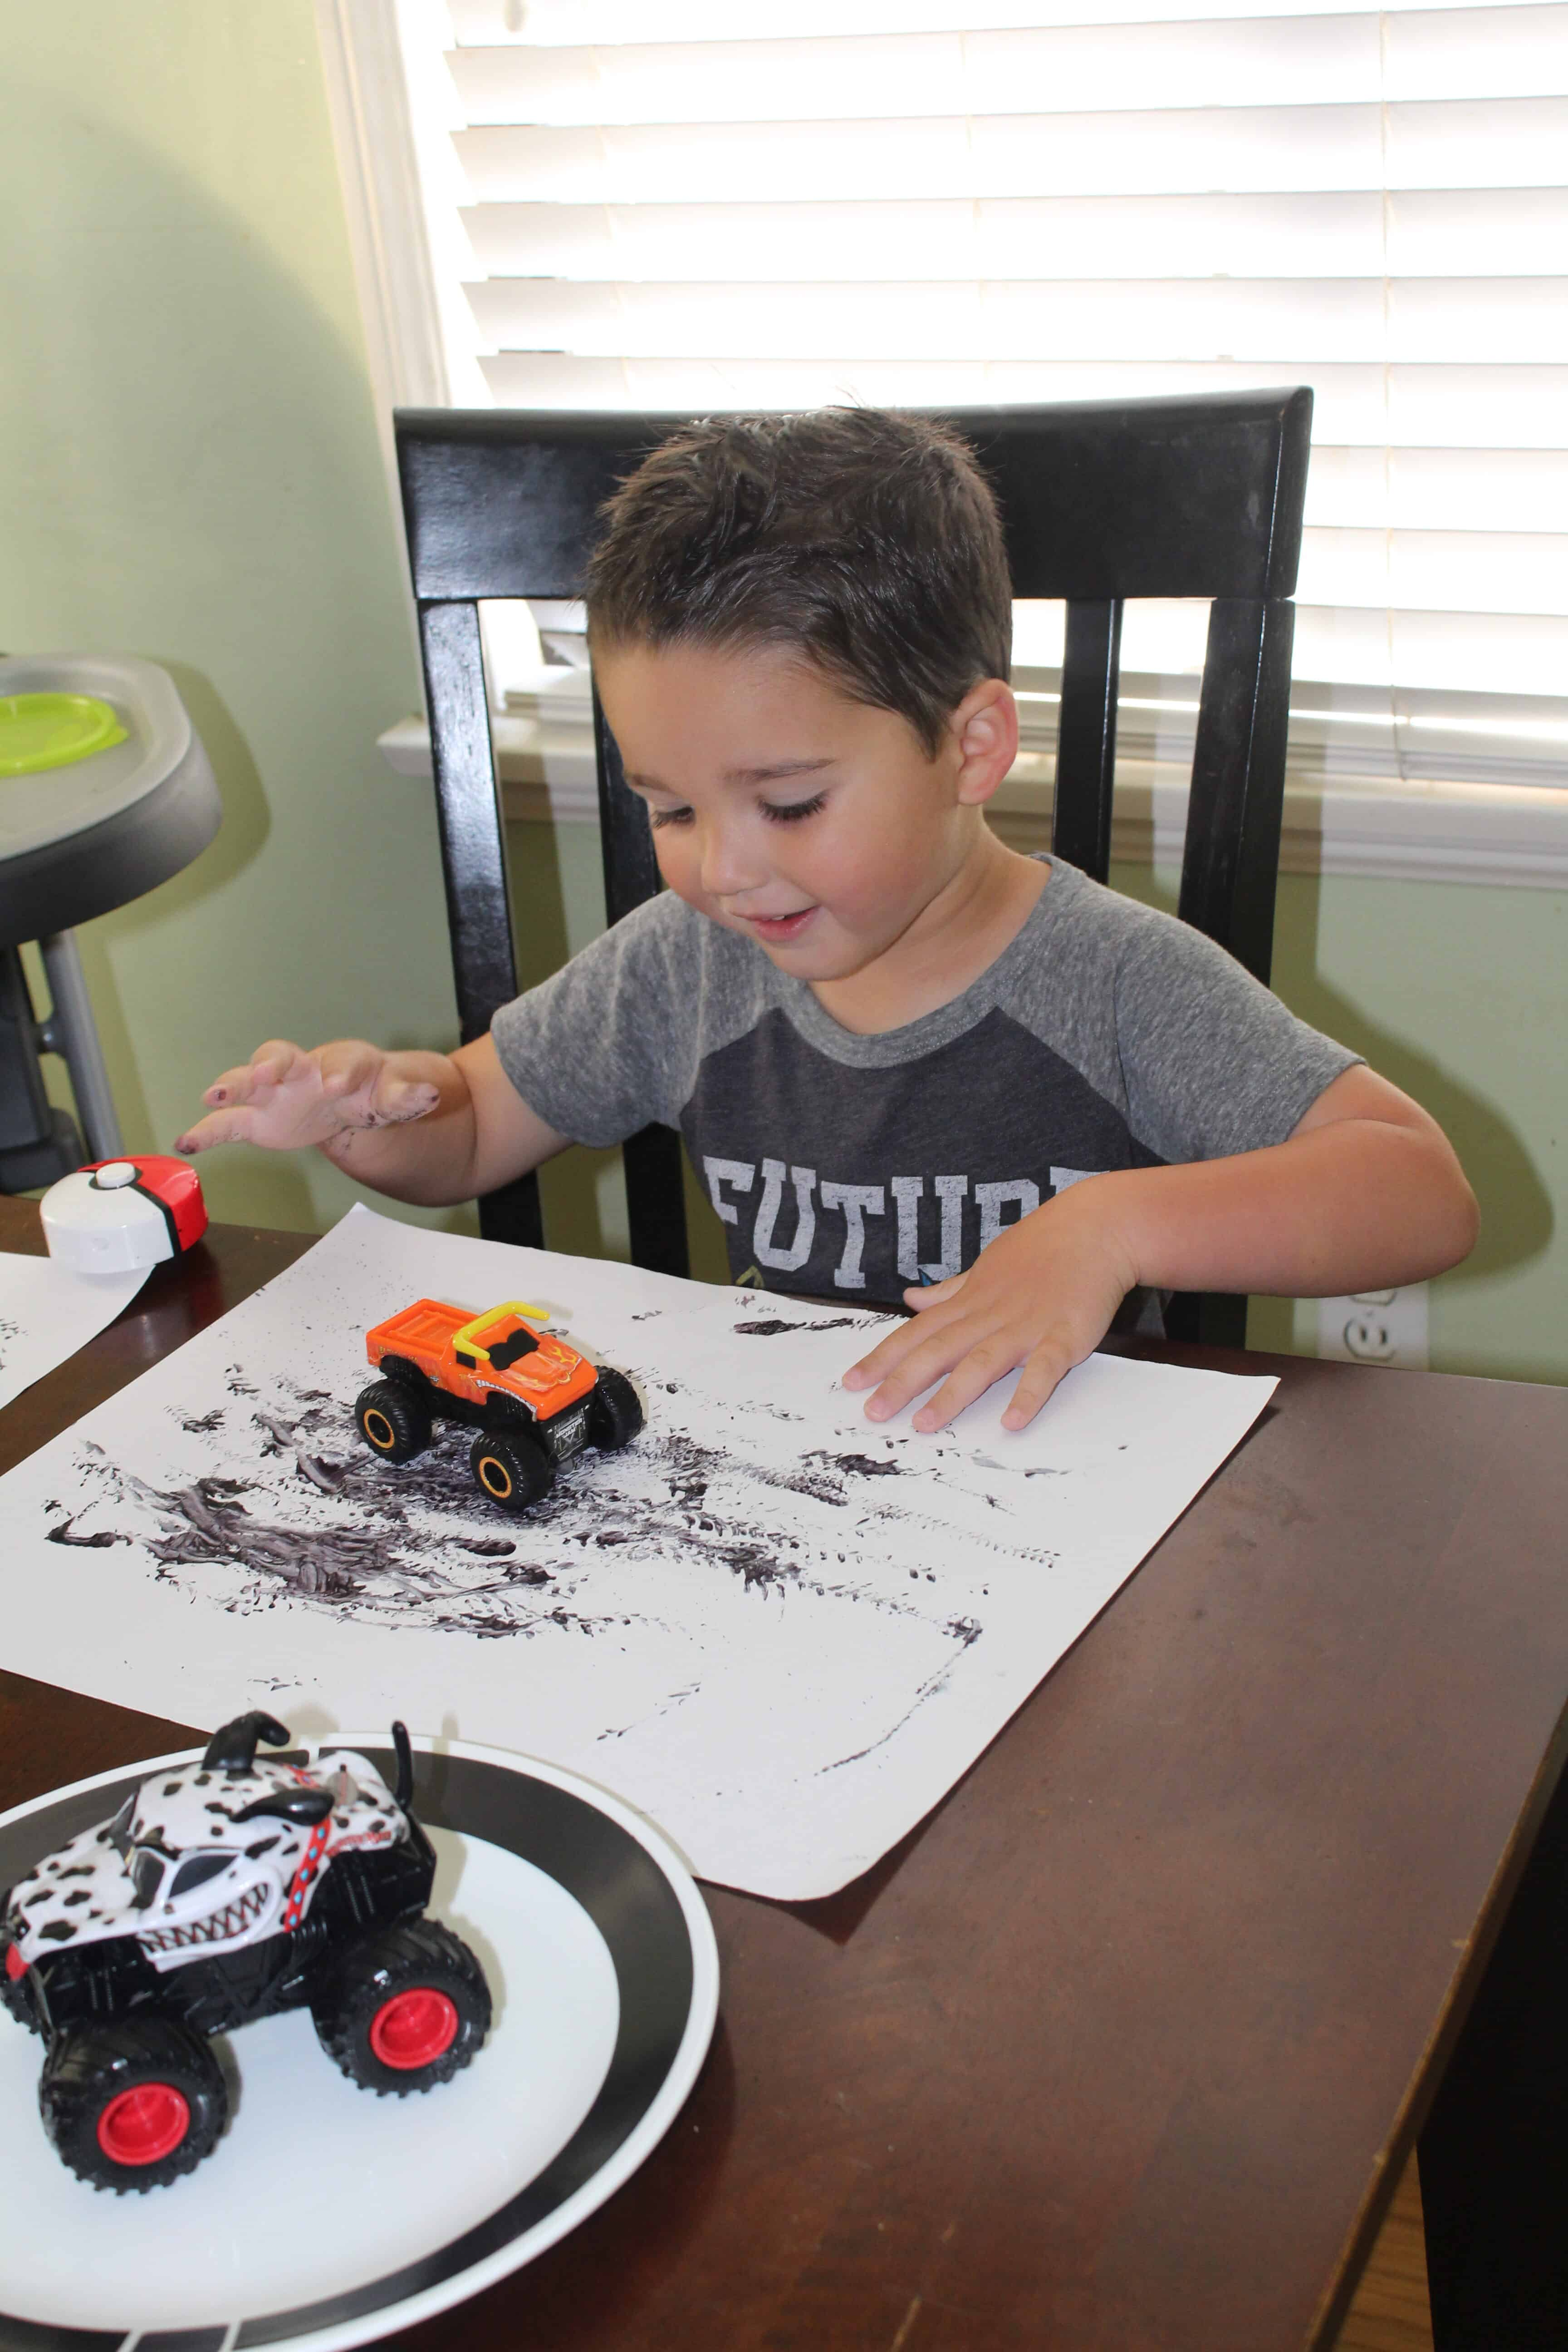 A toddler using a toy car with various patterns on the activity mat